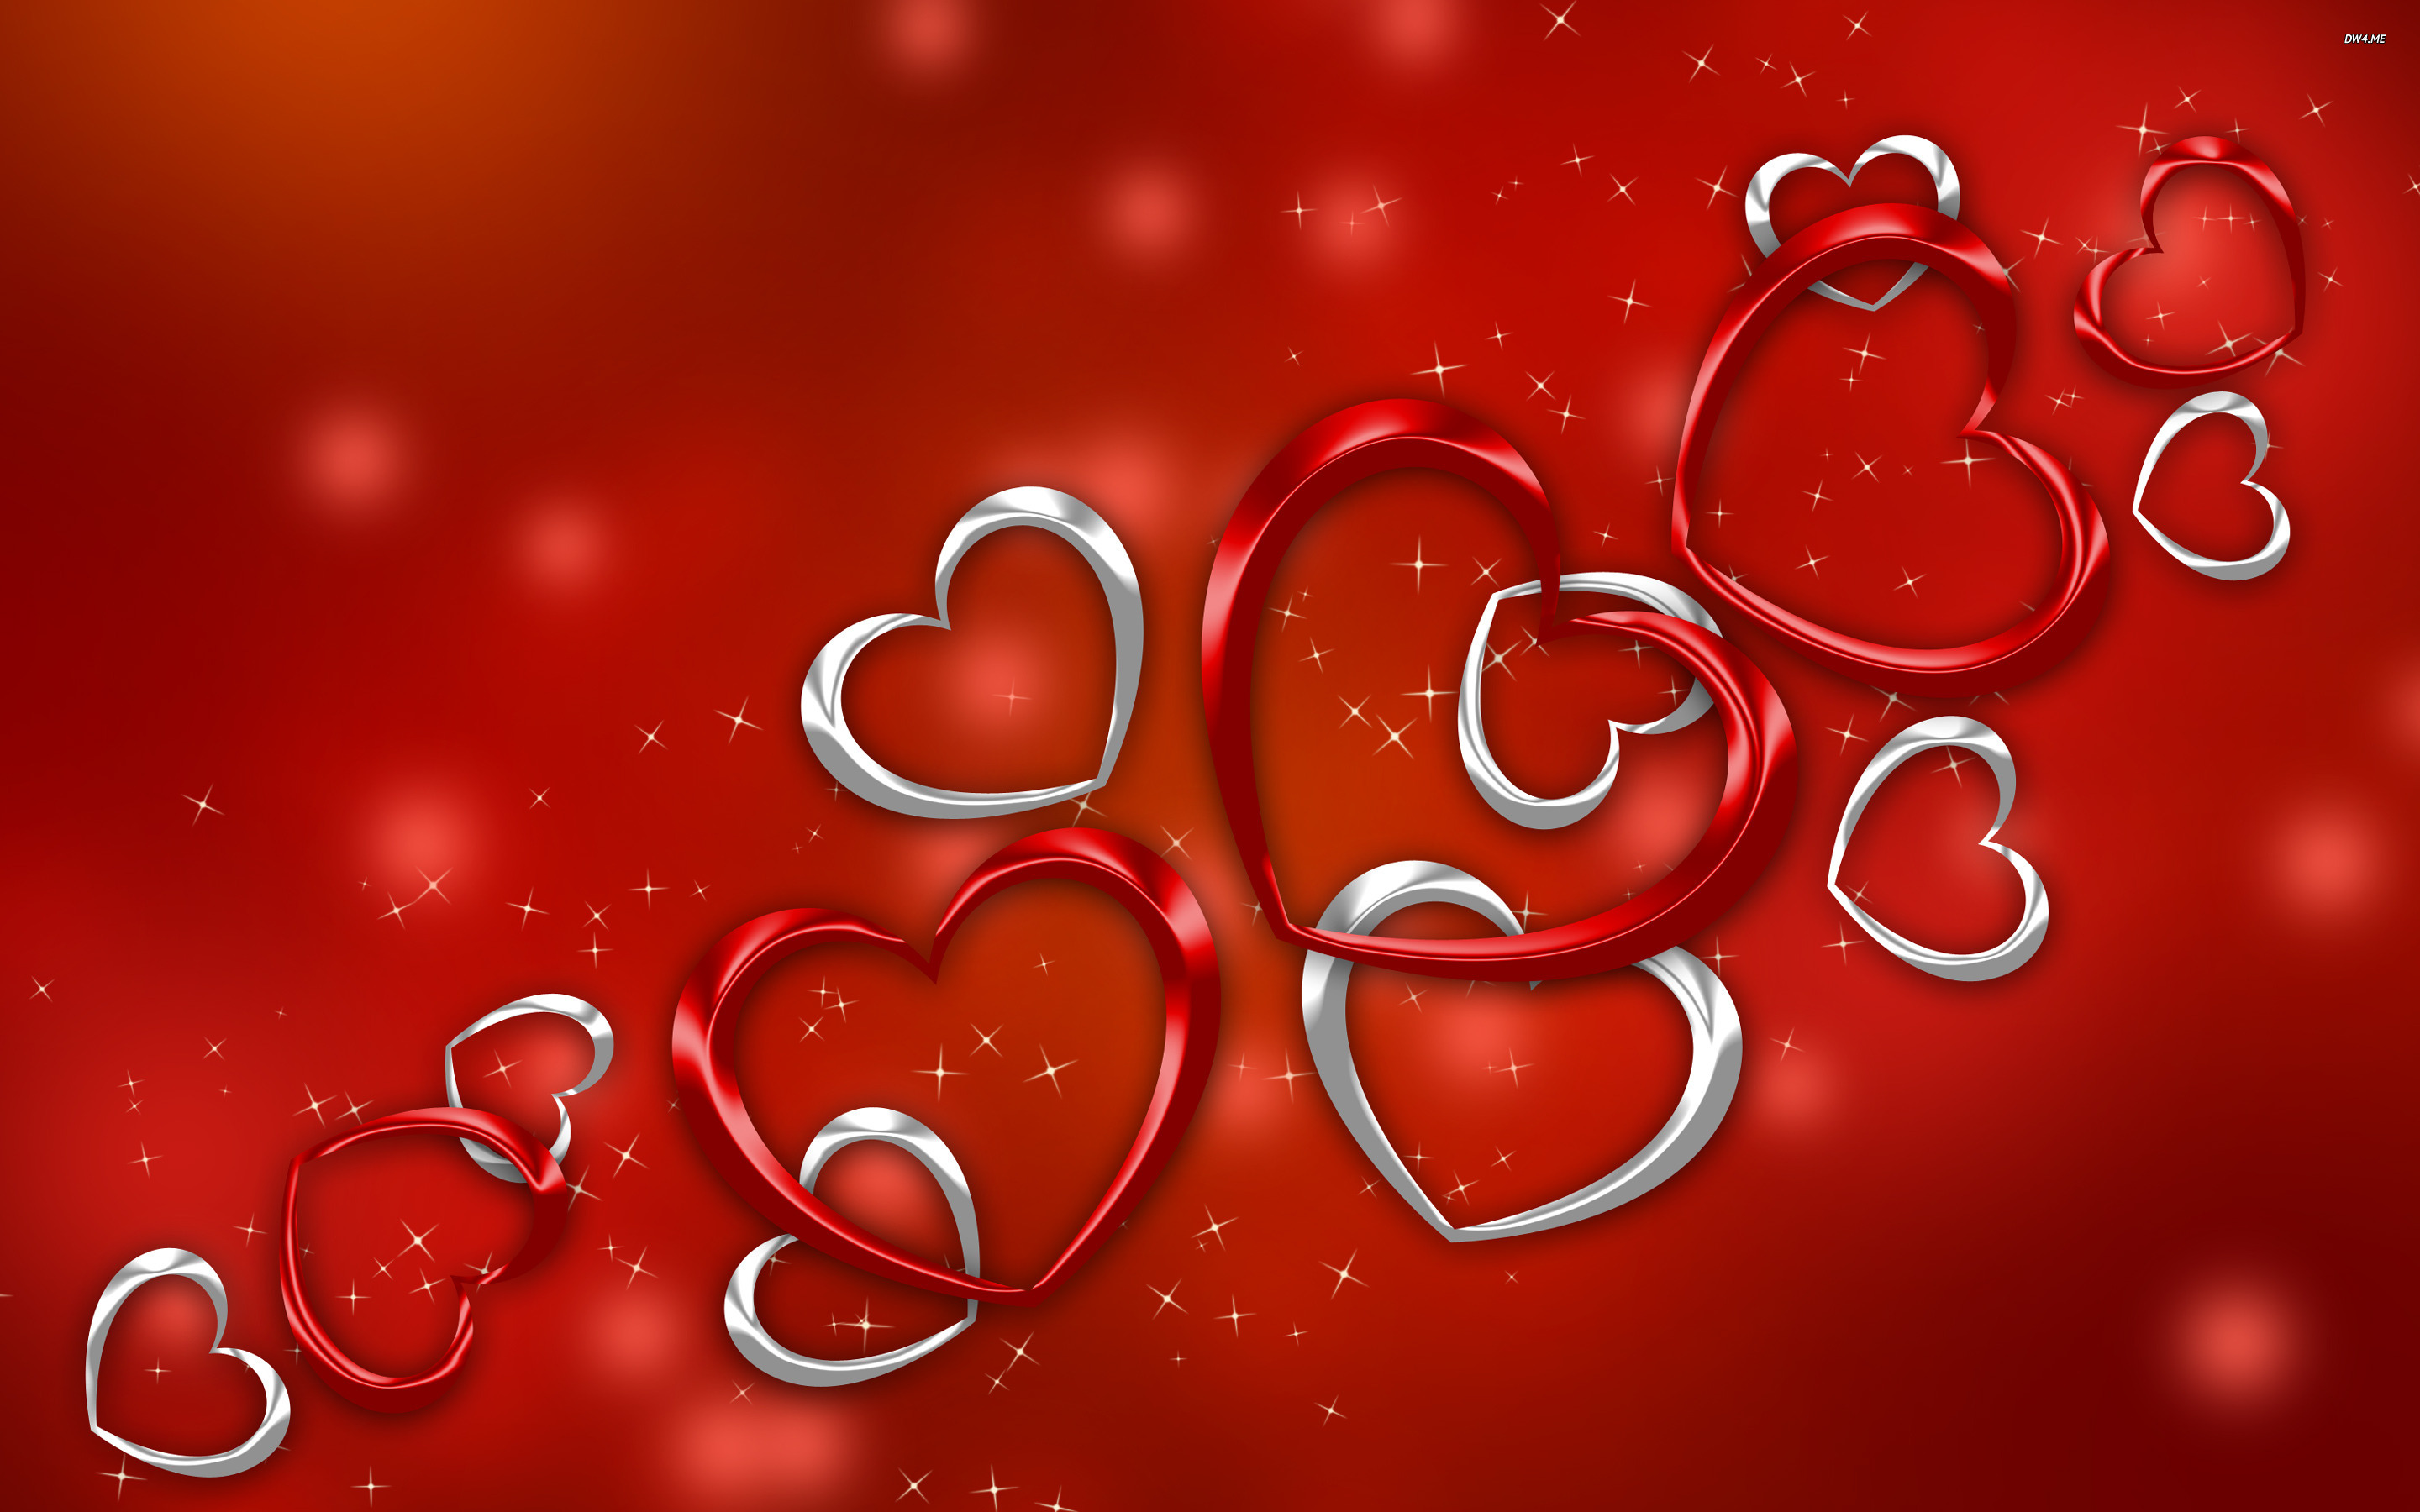 Red Heart Love Wallpaper: Red Heart Wallpapers